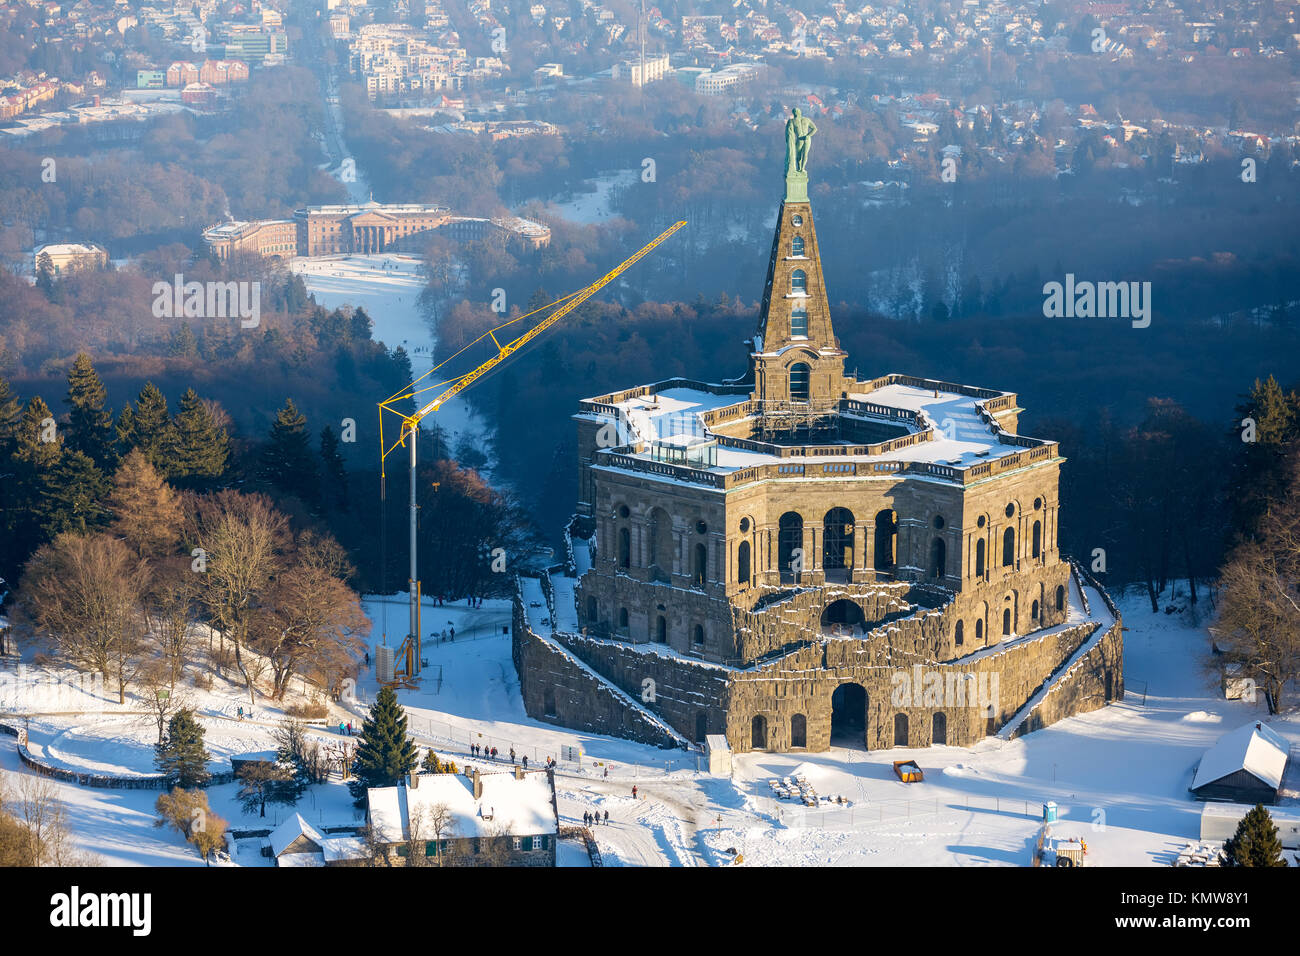 Hercules with the Hercules statue on the top of a pyramid, giant castle, Kassel, Bergpark Wilhelmshöhe, Hesse, - Stock Image